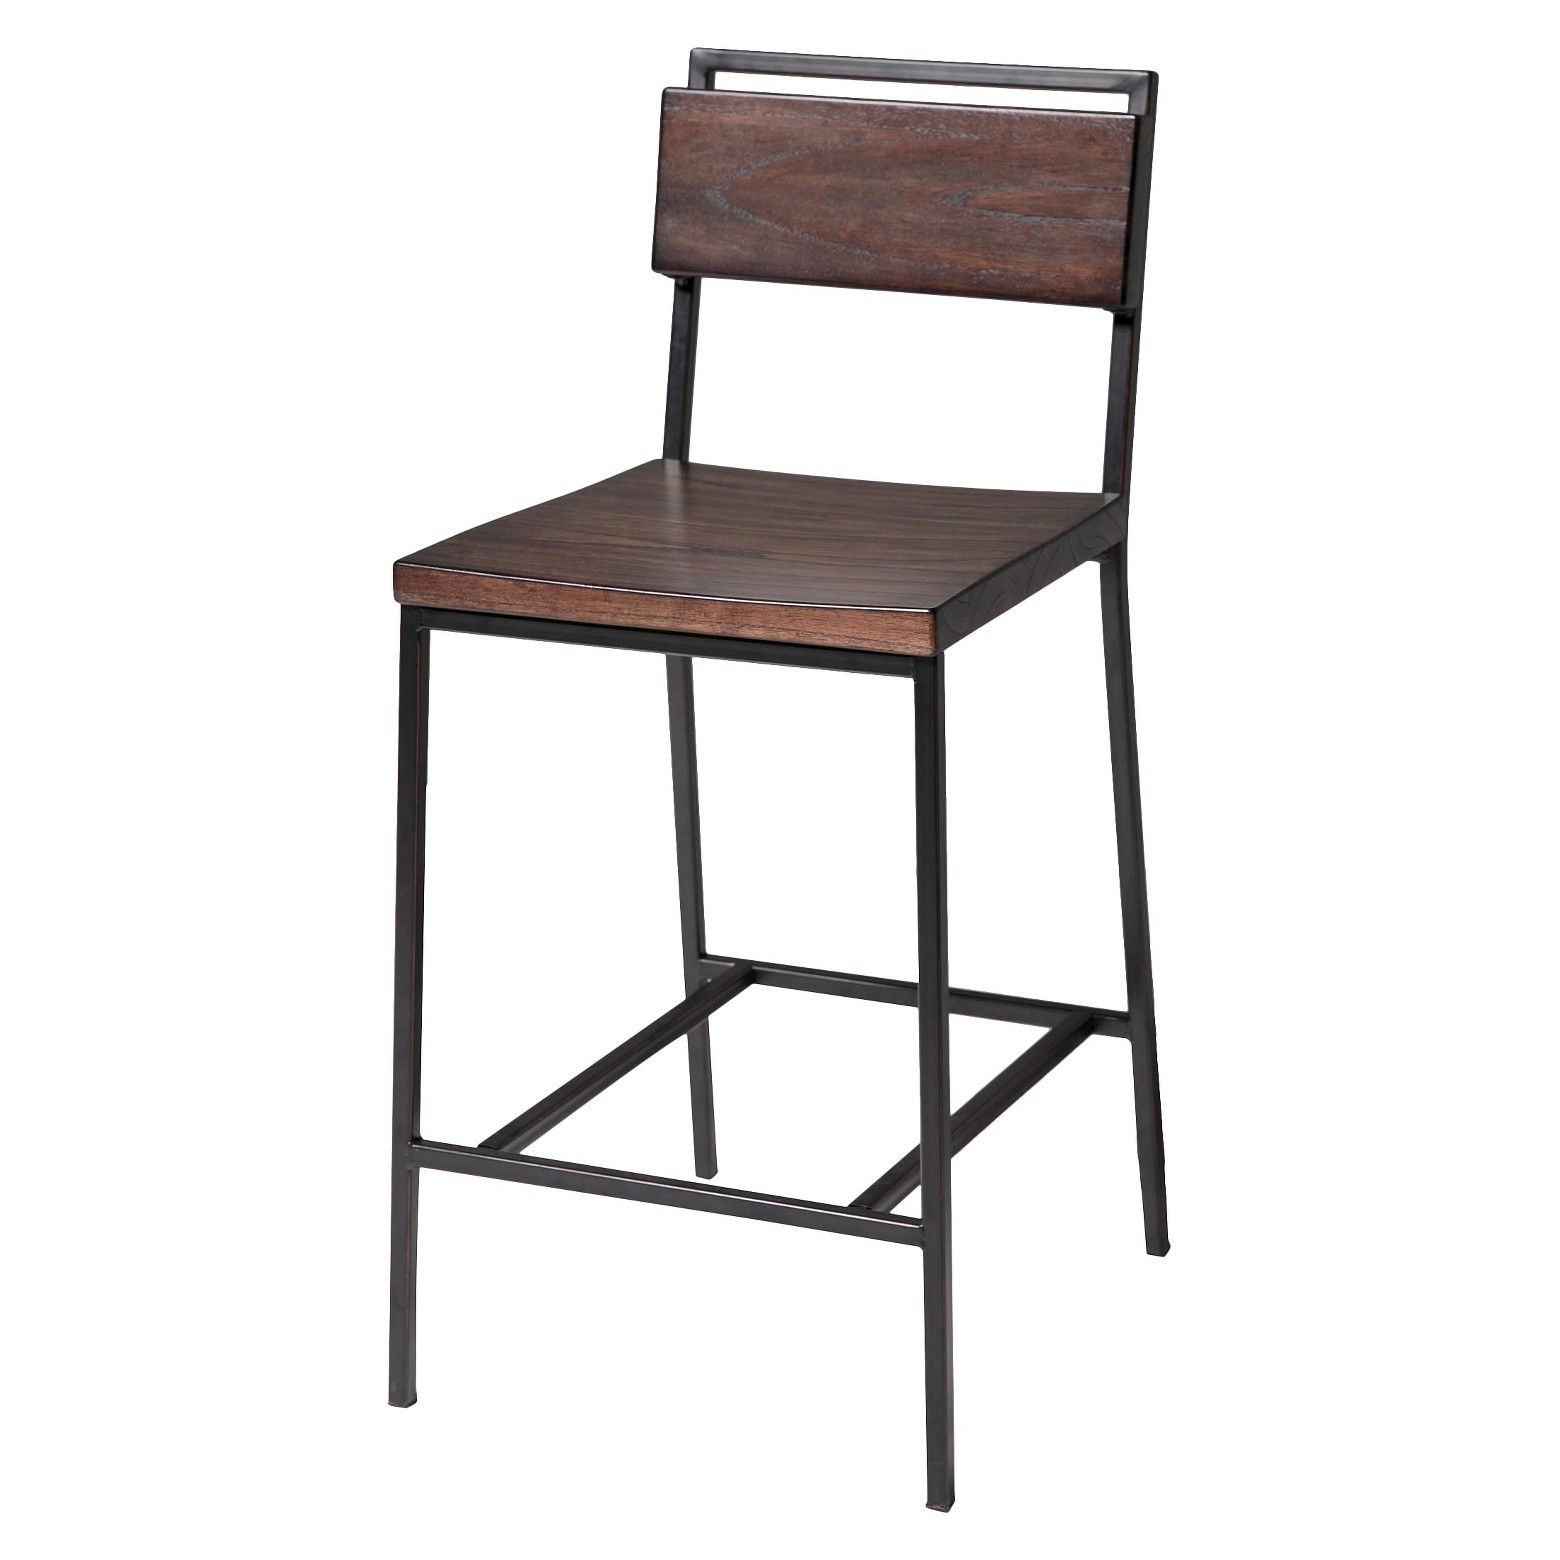 Best Of 26 Bar Stool with Back